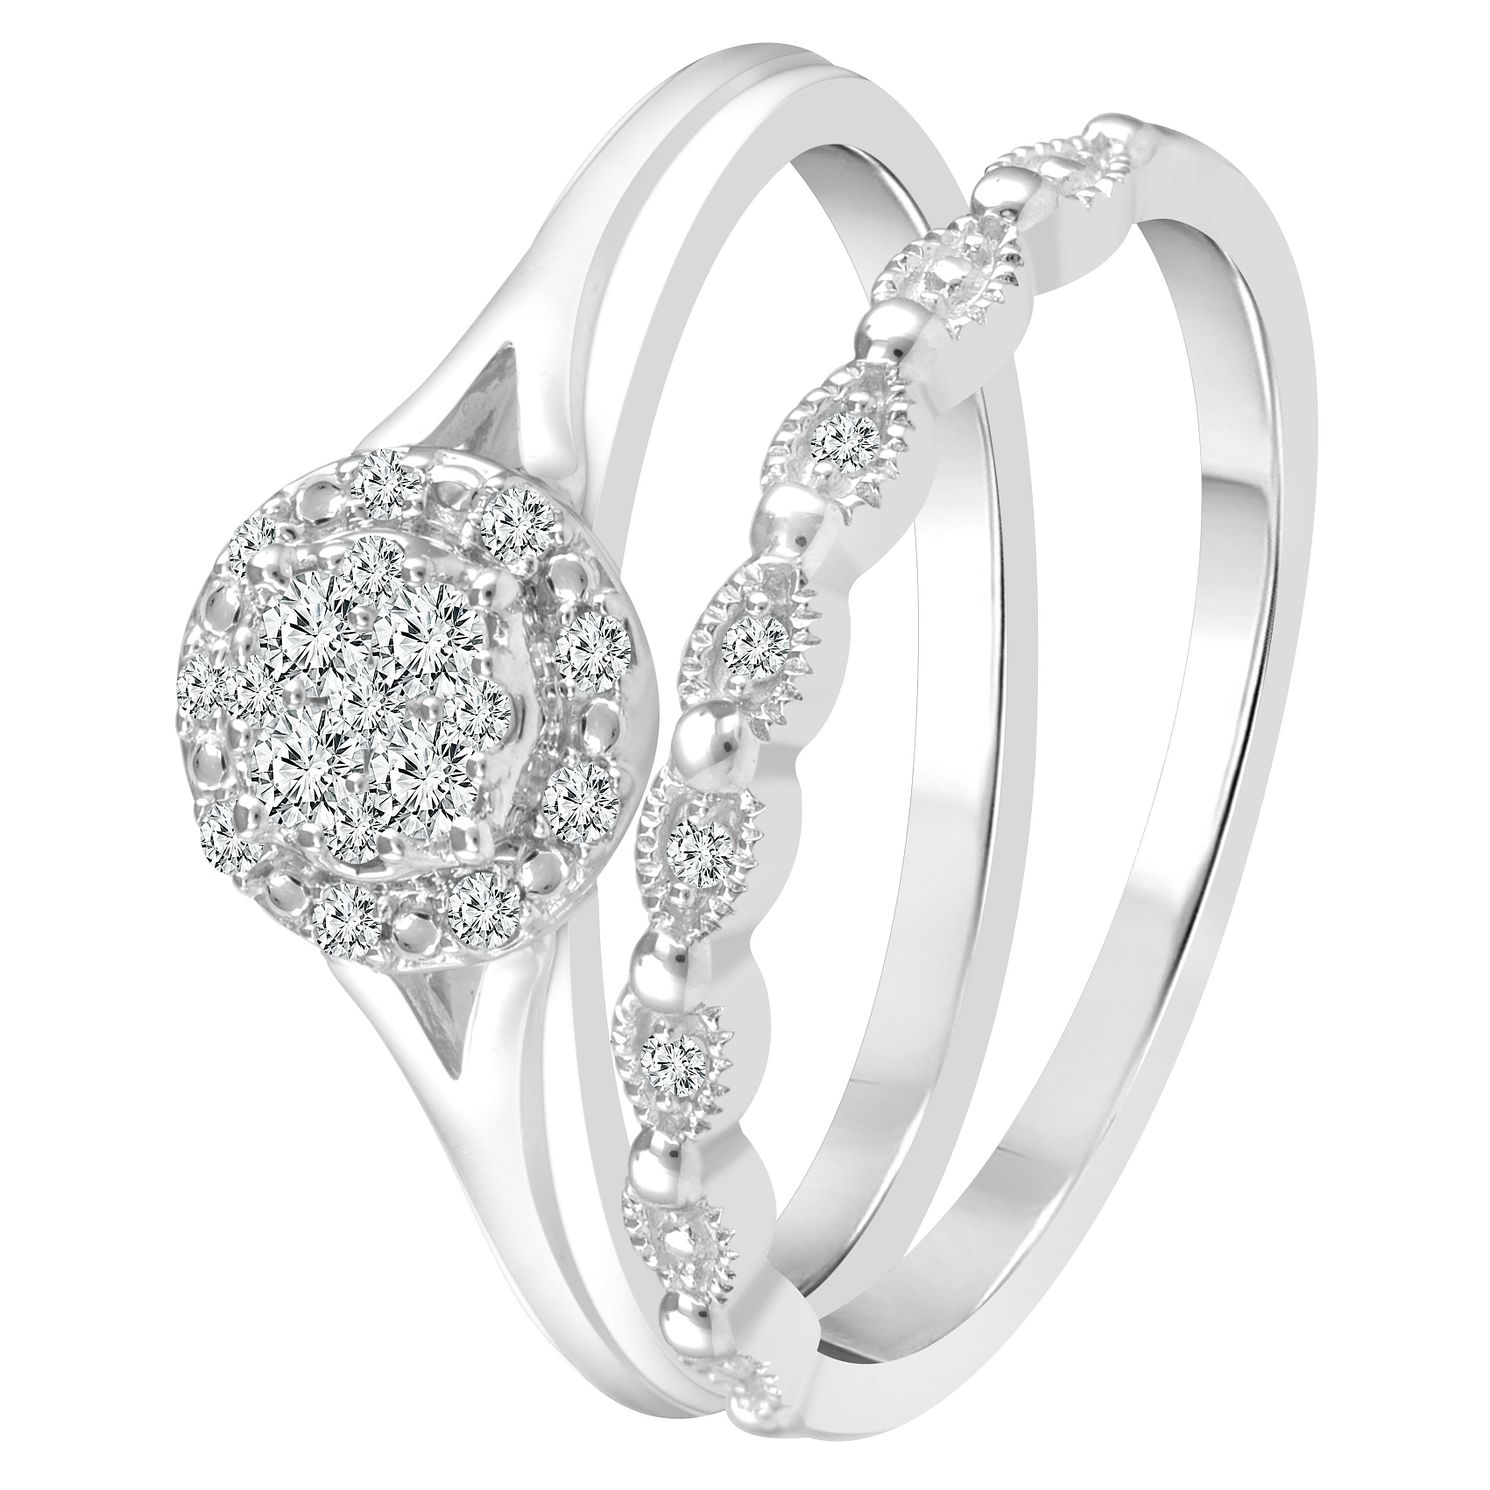 Perfect Fit 9ct White Gold 0.15ct Total Diamond Bridal Set - Product number 4008650